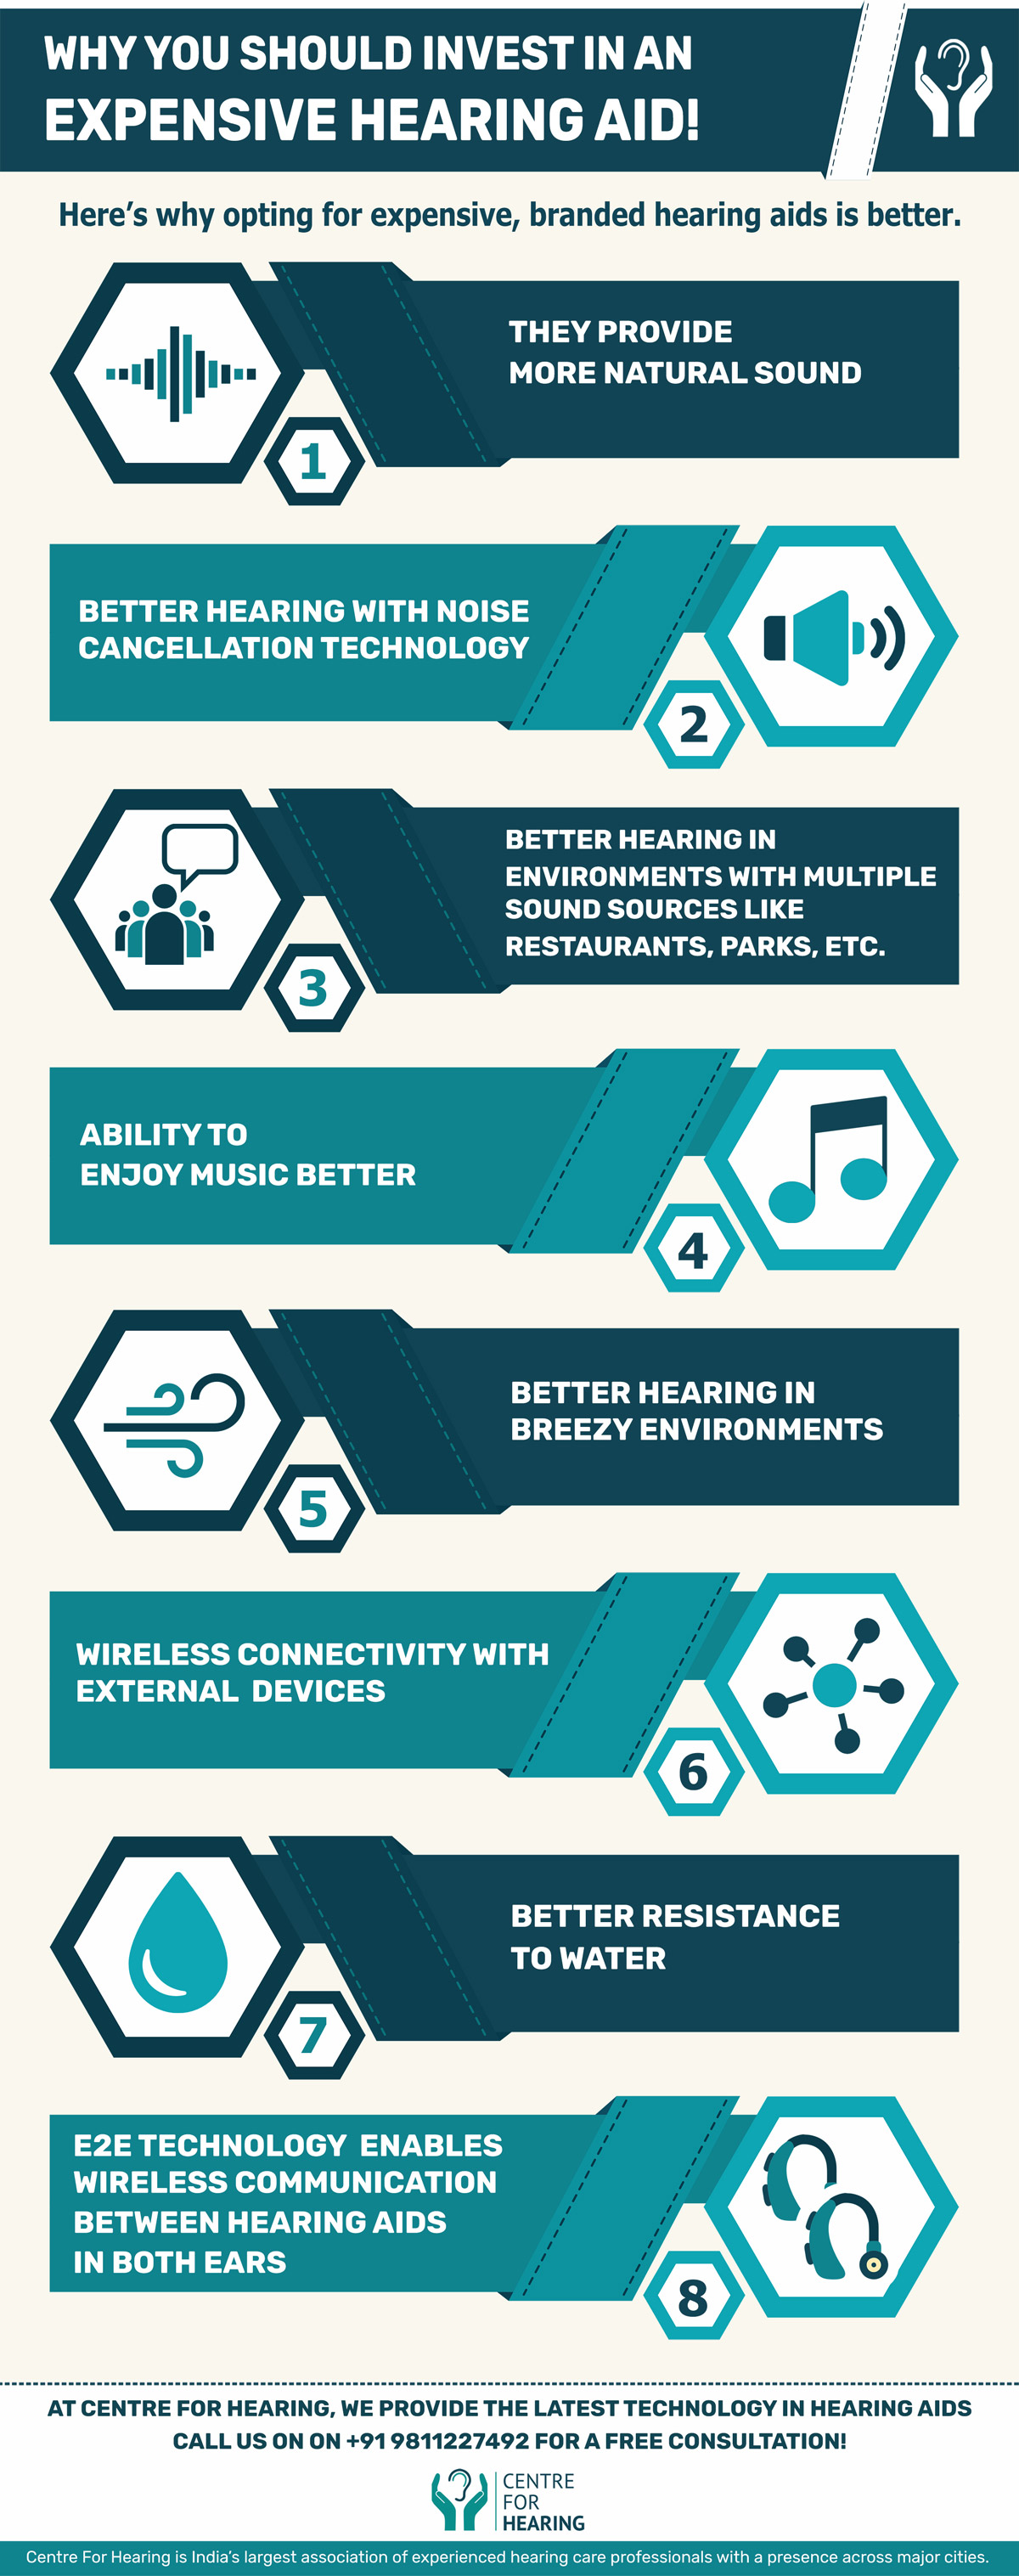 Why-You-Should-Buy-Expensive-Hearing-Aids